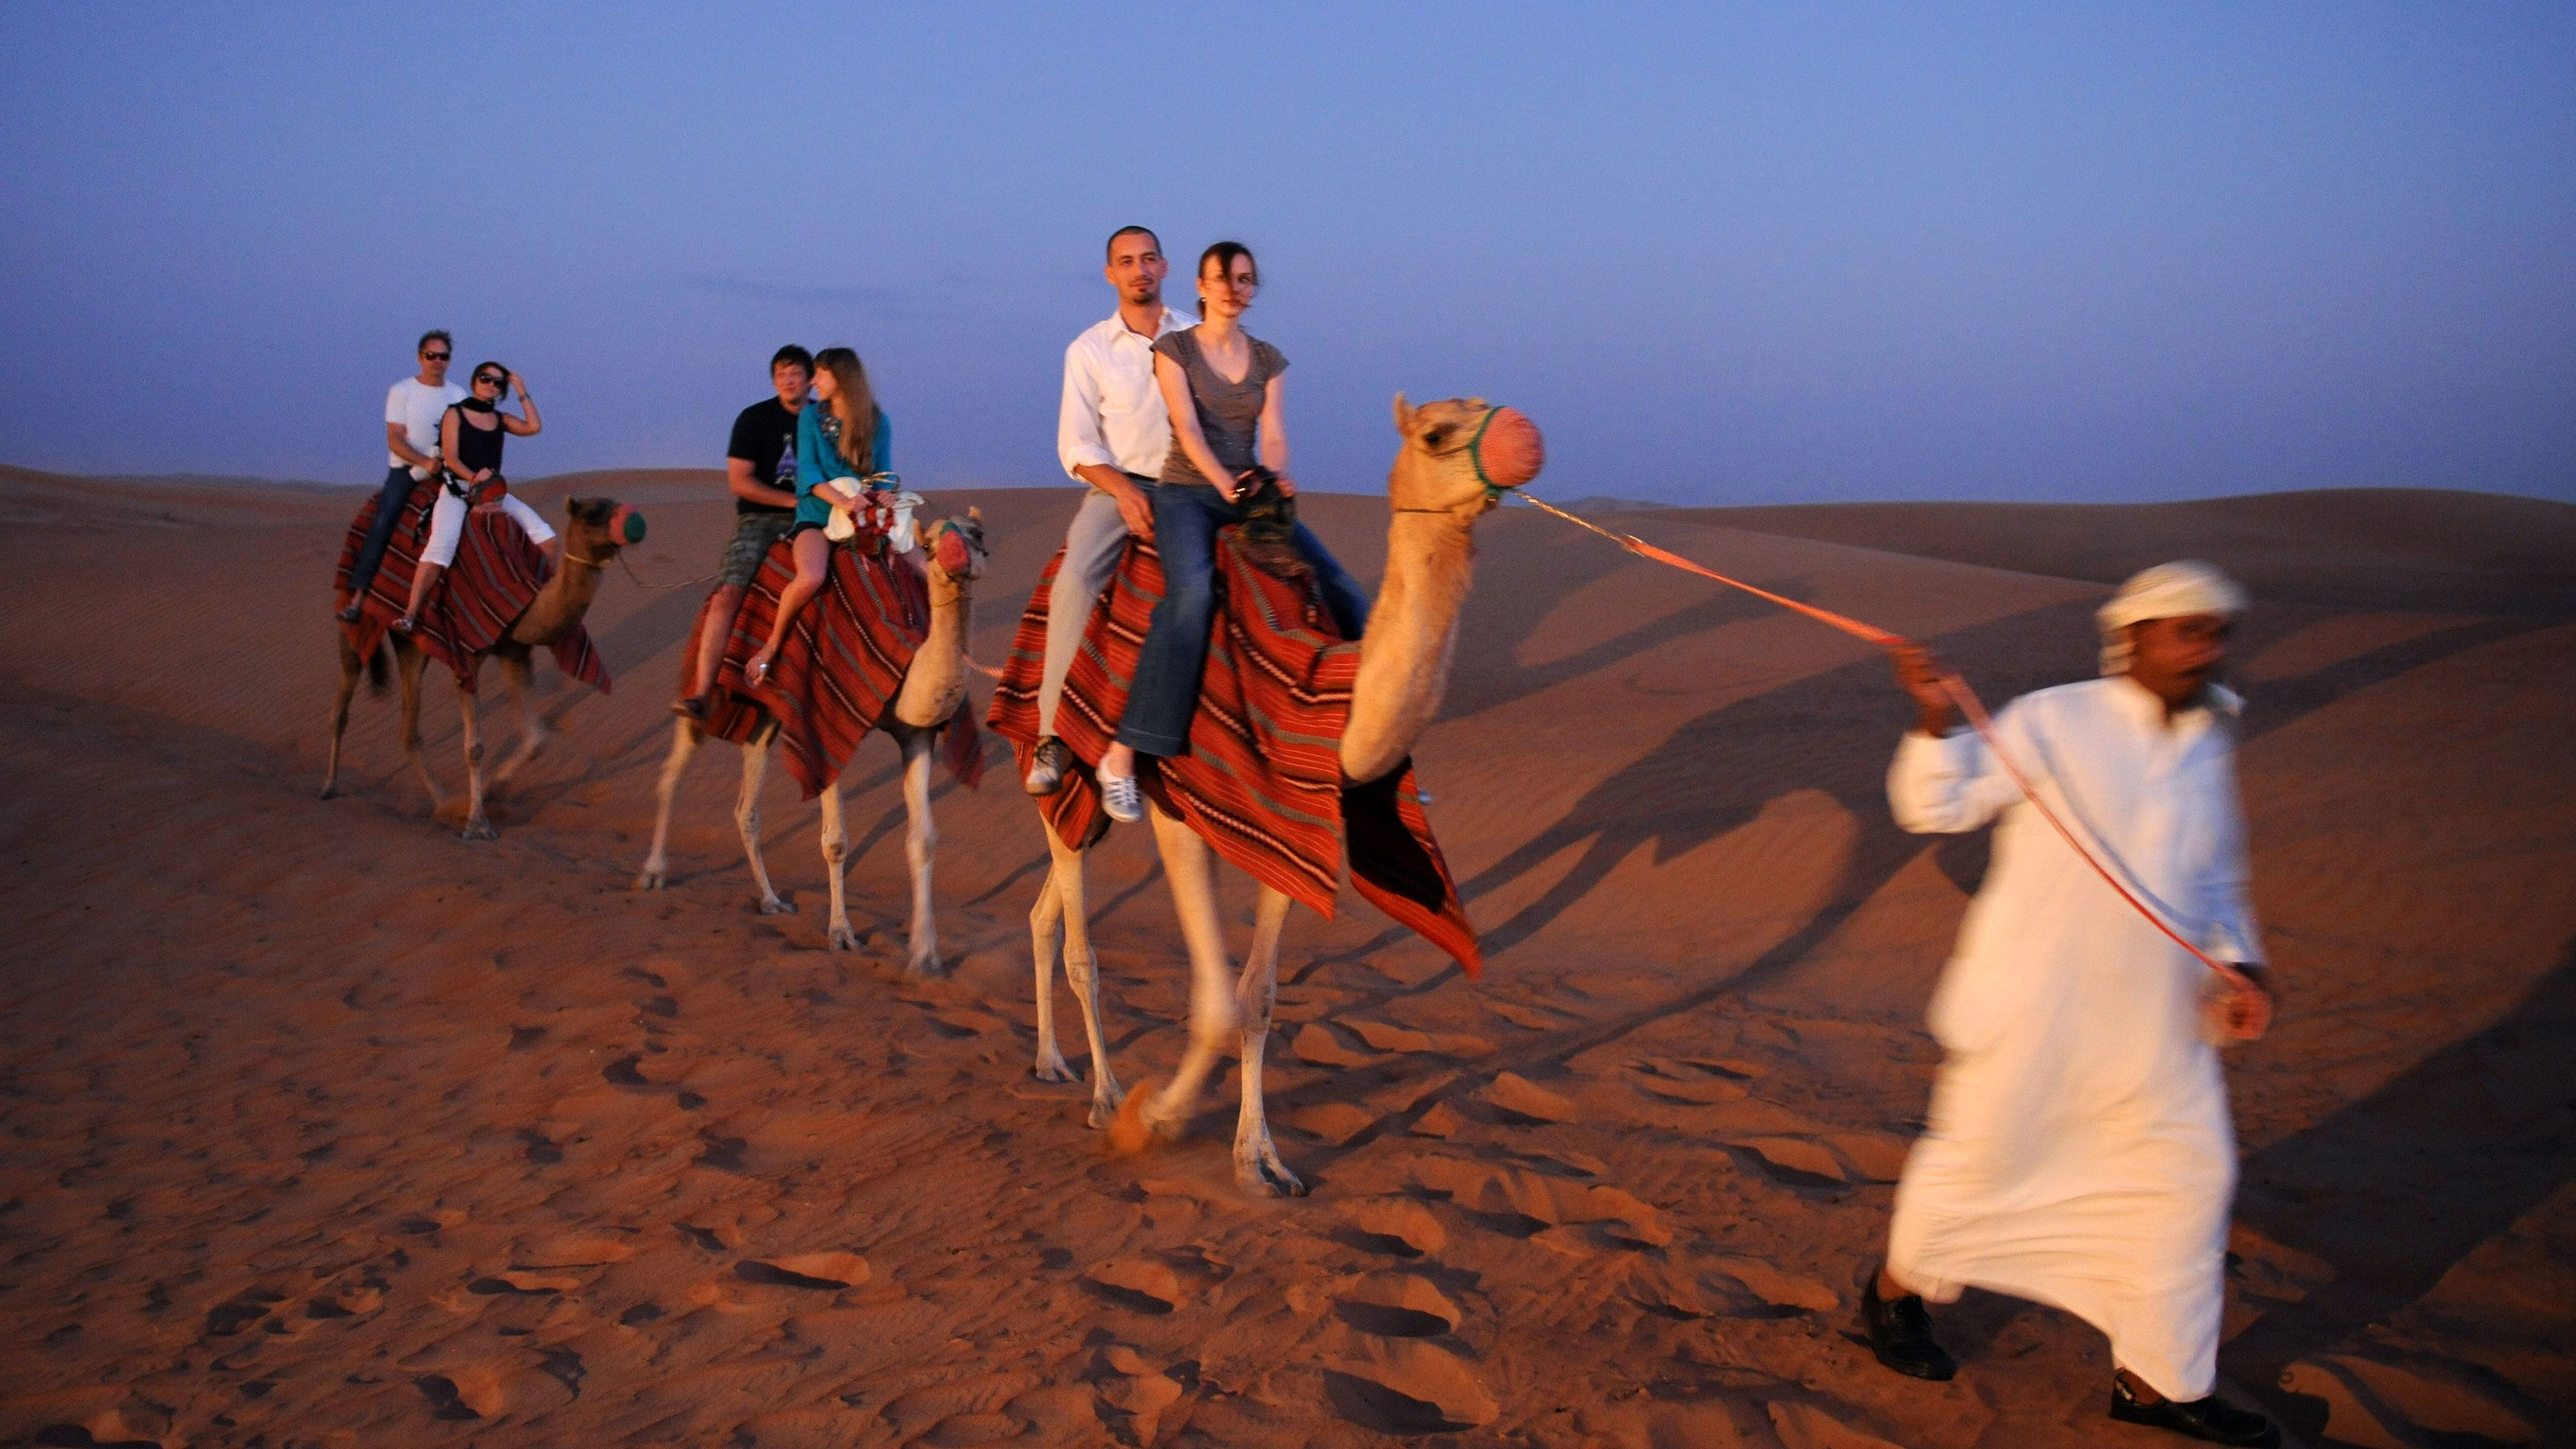 Arabic bedouin leading three camels with couple on them in Dubai